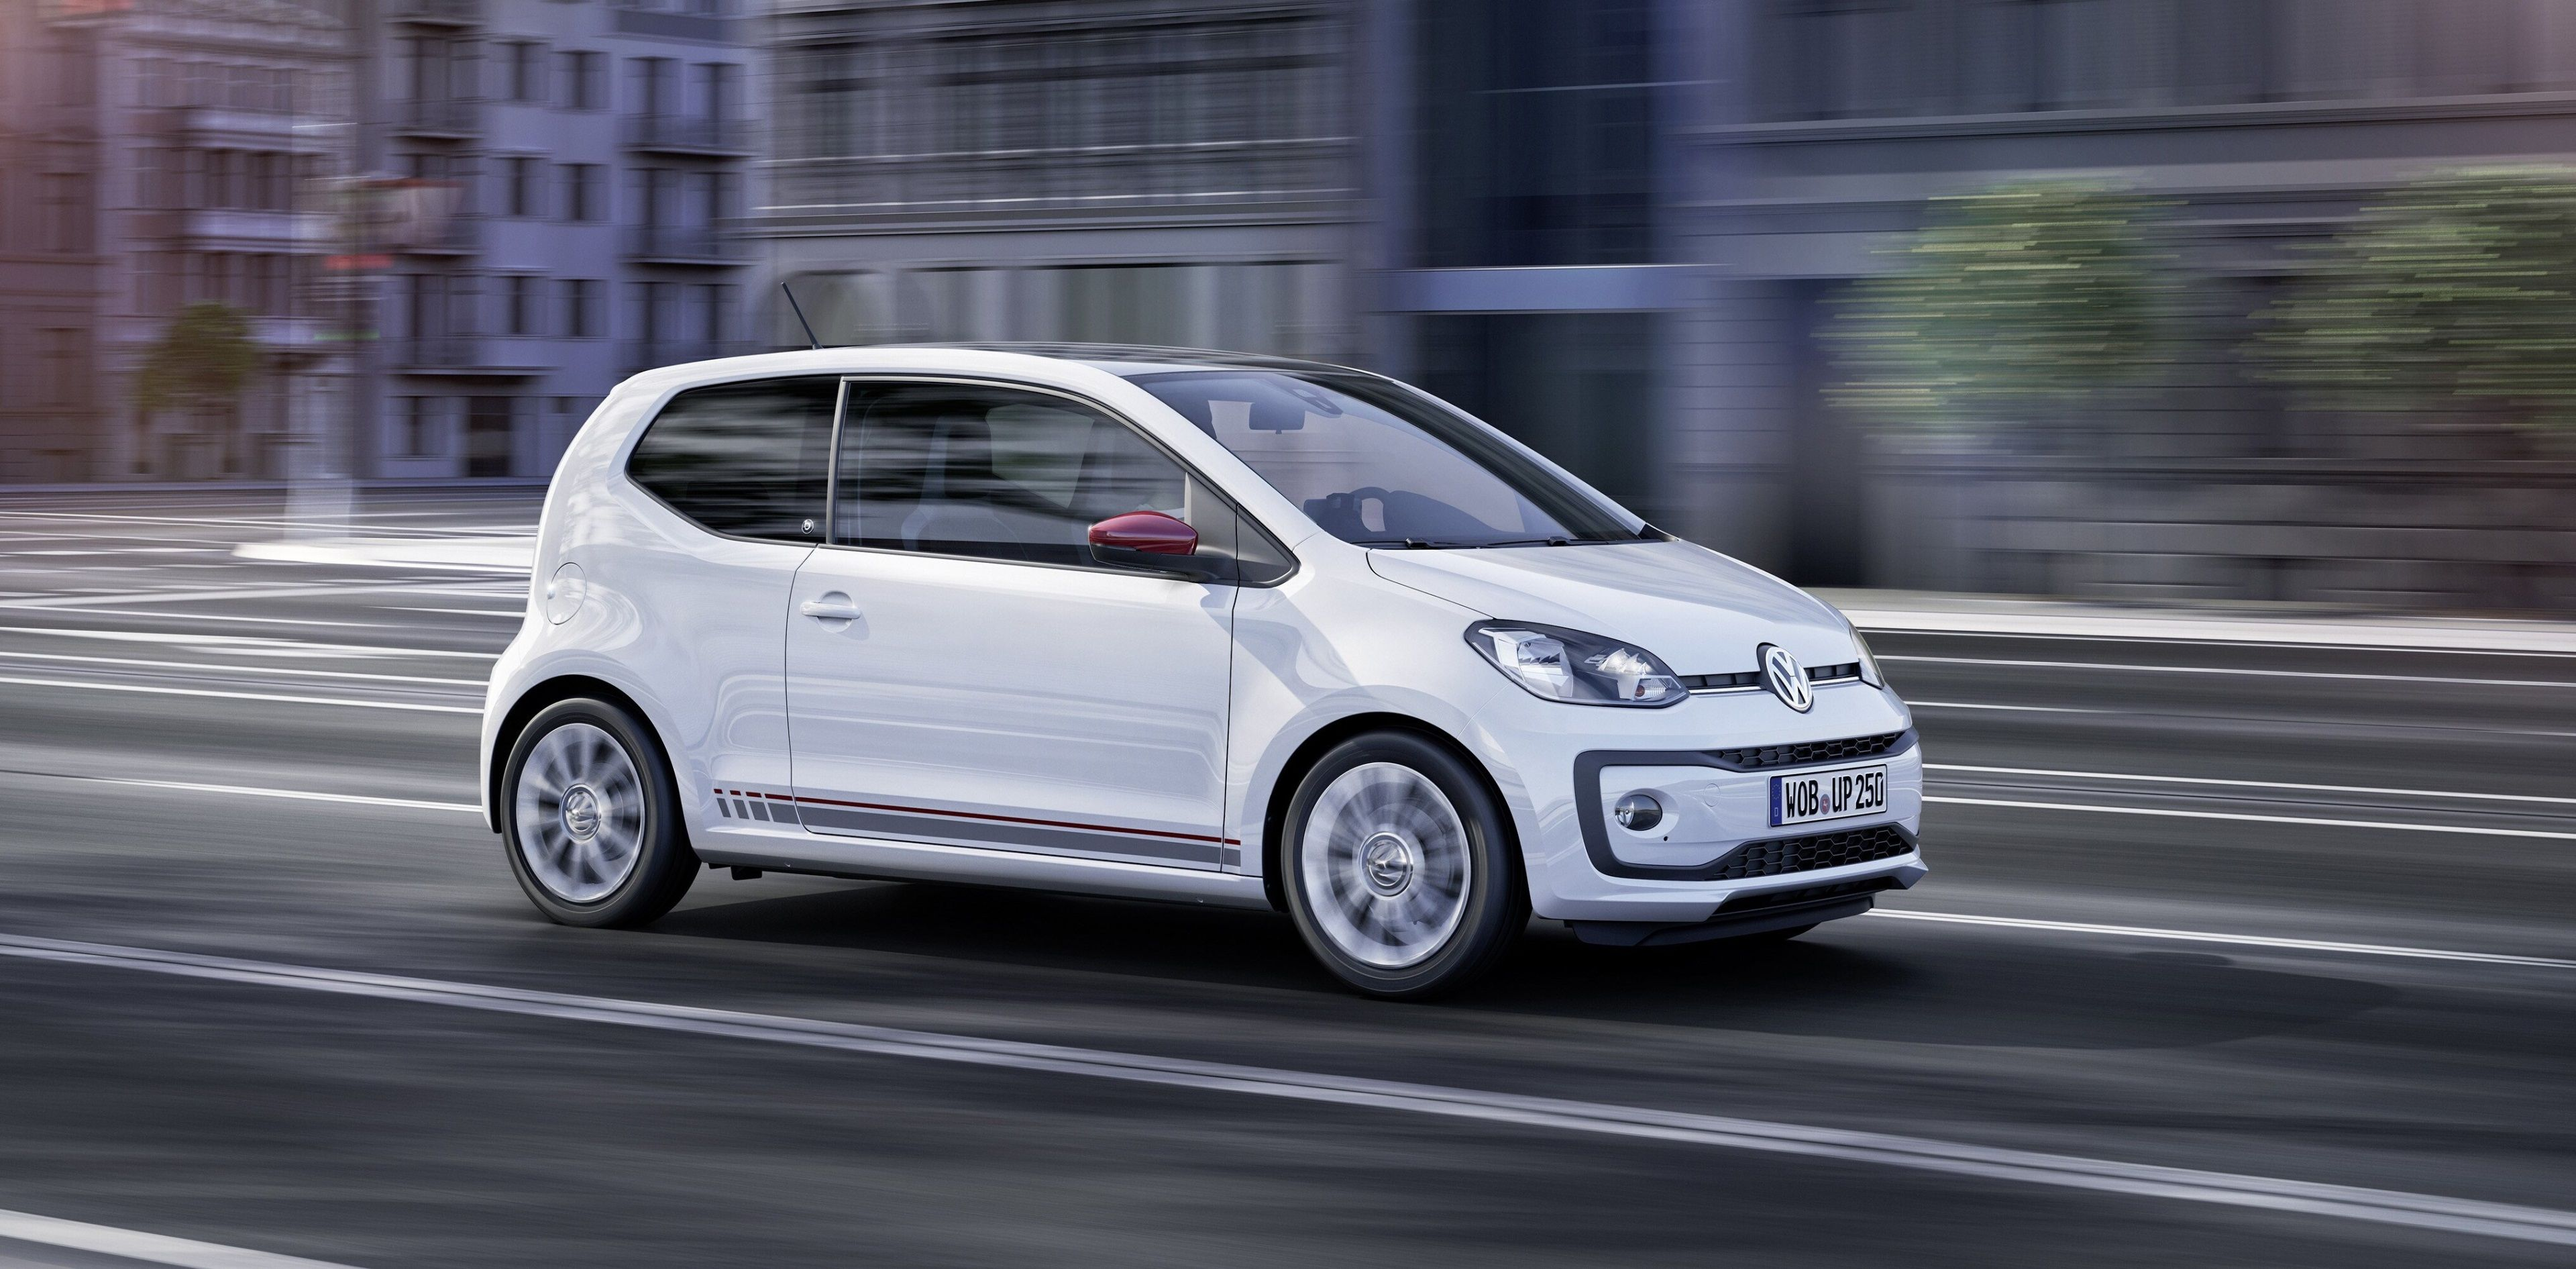 3840x1891 Volkswagen Up Beats 4k Desktop Backgrounds Wallpaper